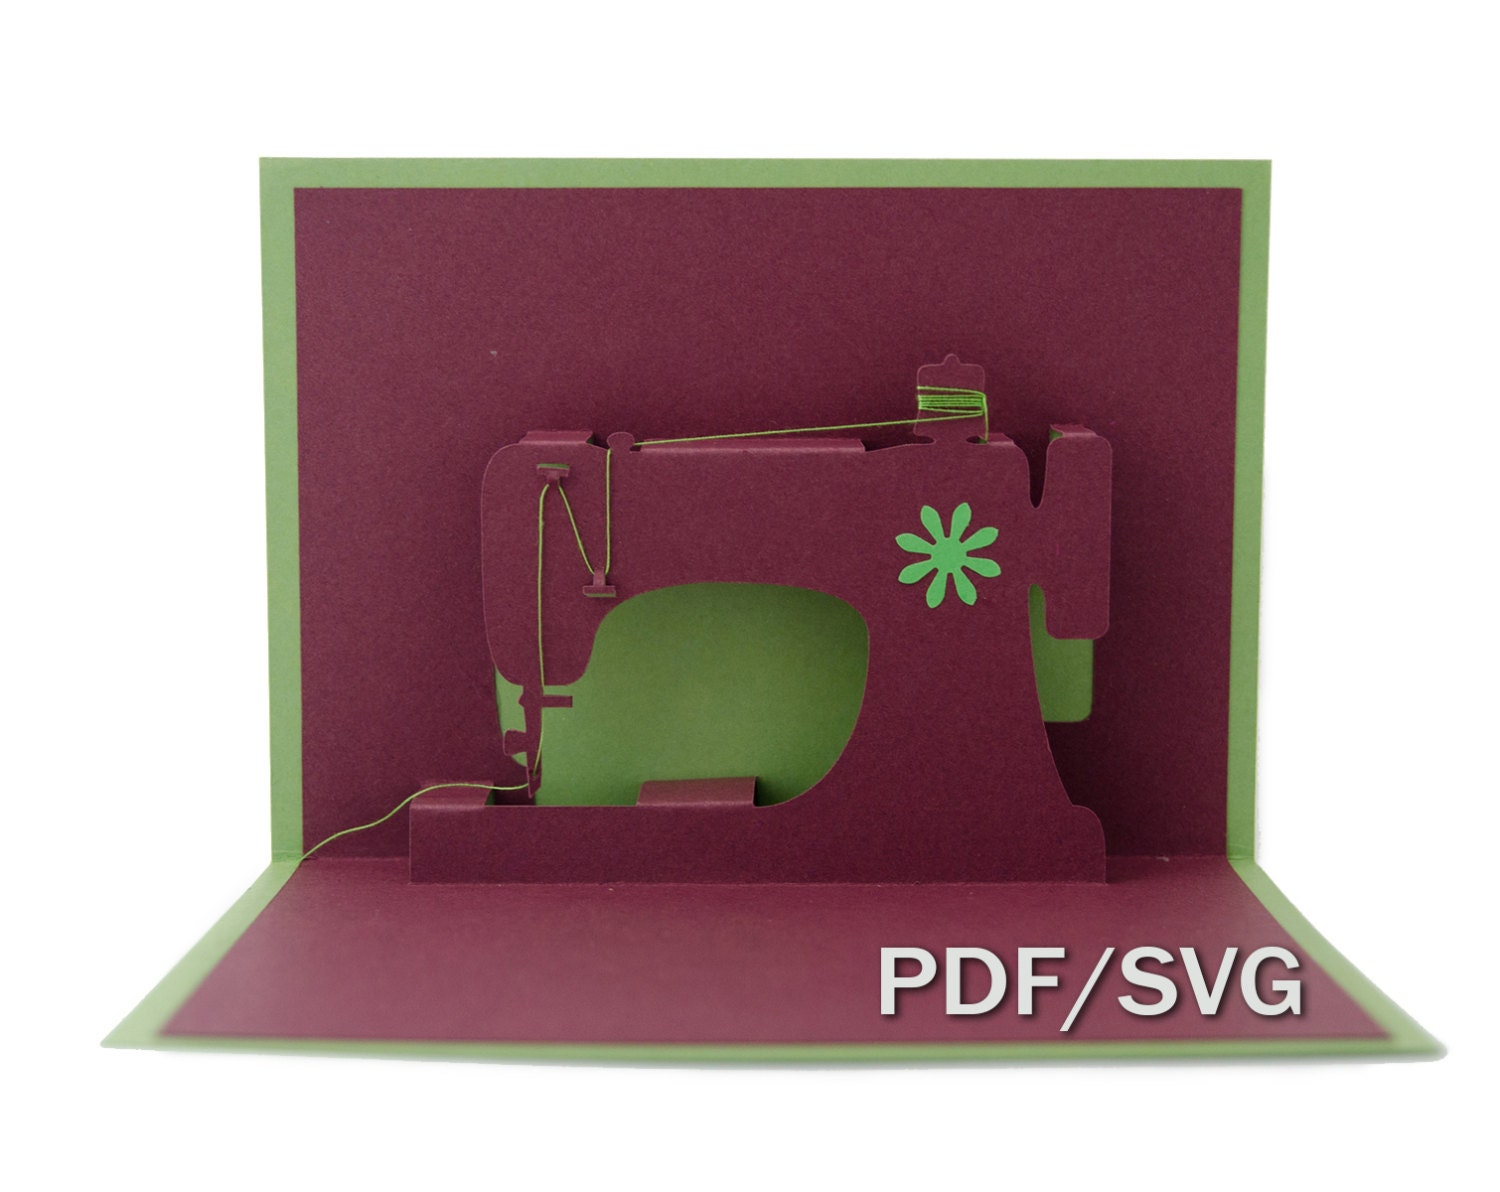 Templates PDF & SVG for Sewing machine 3D pop up card from KanKrai ...